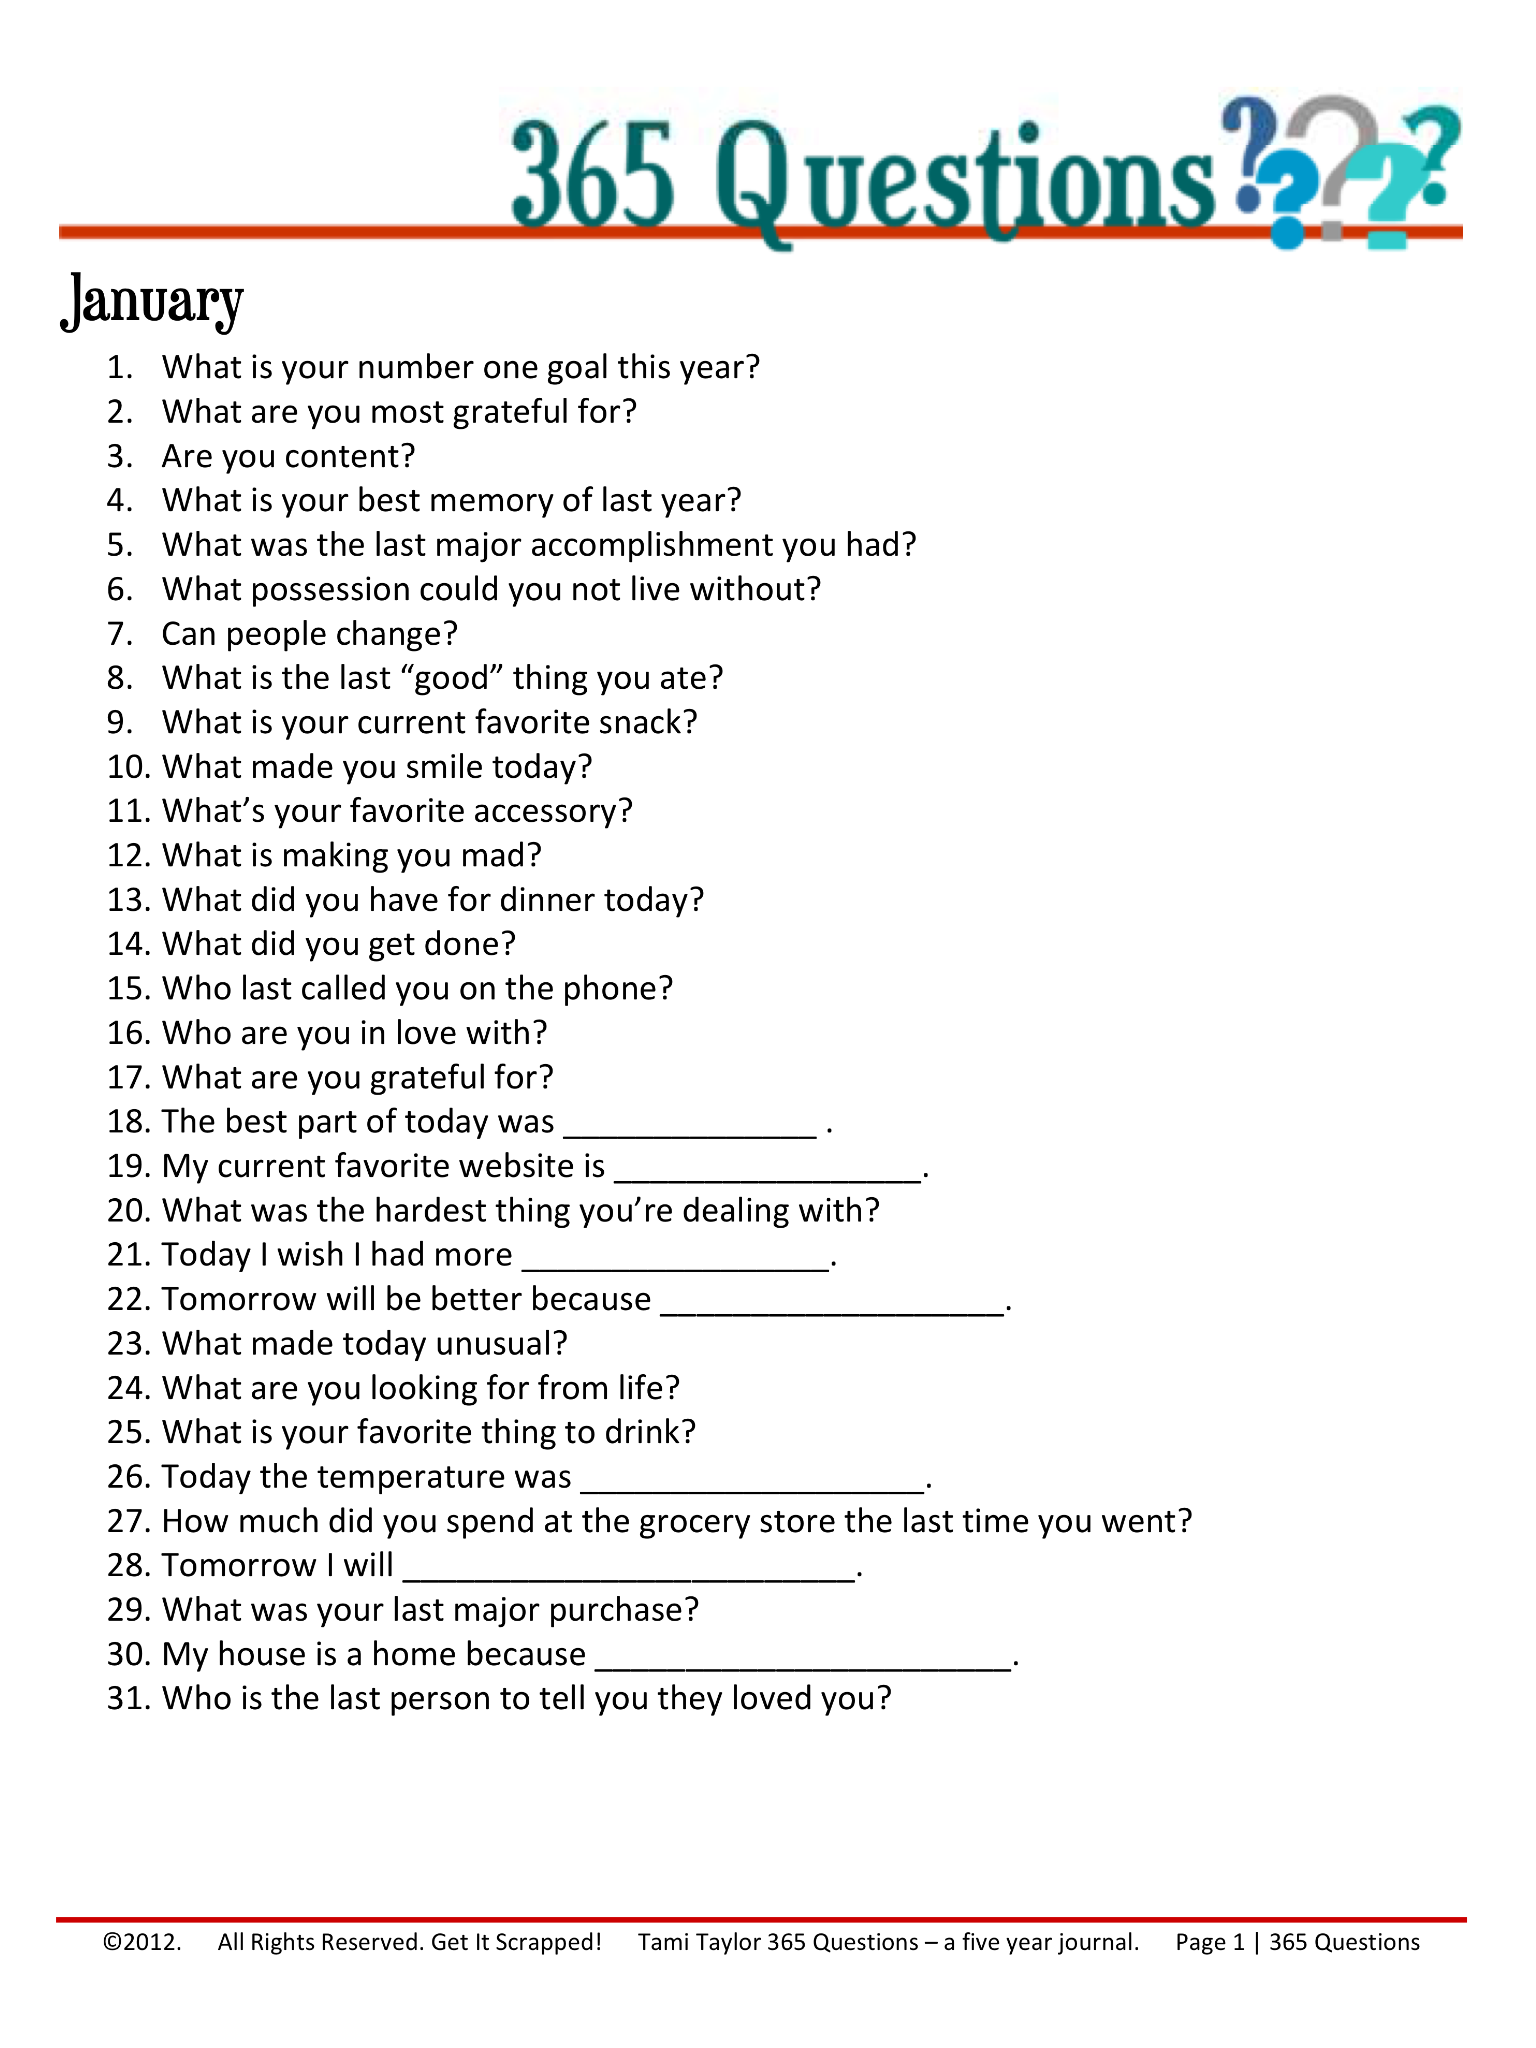 365 Questions January 1 12